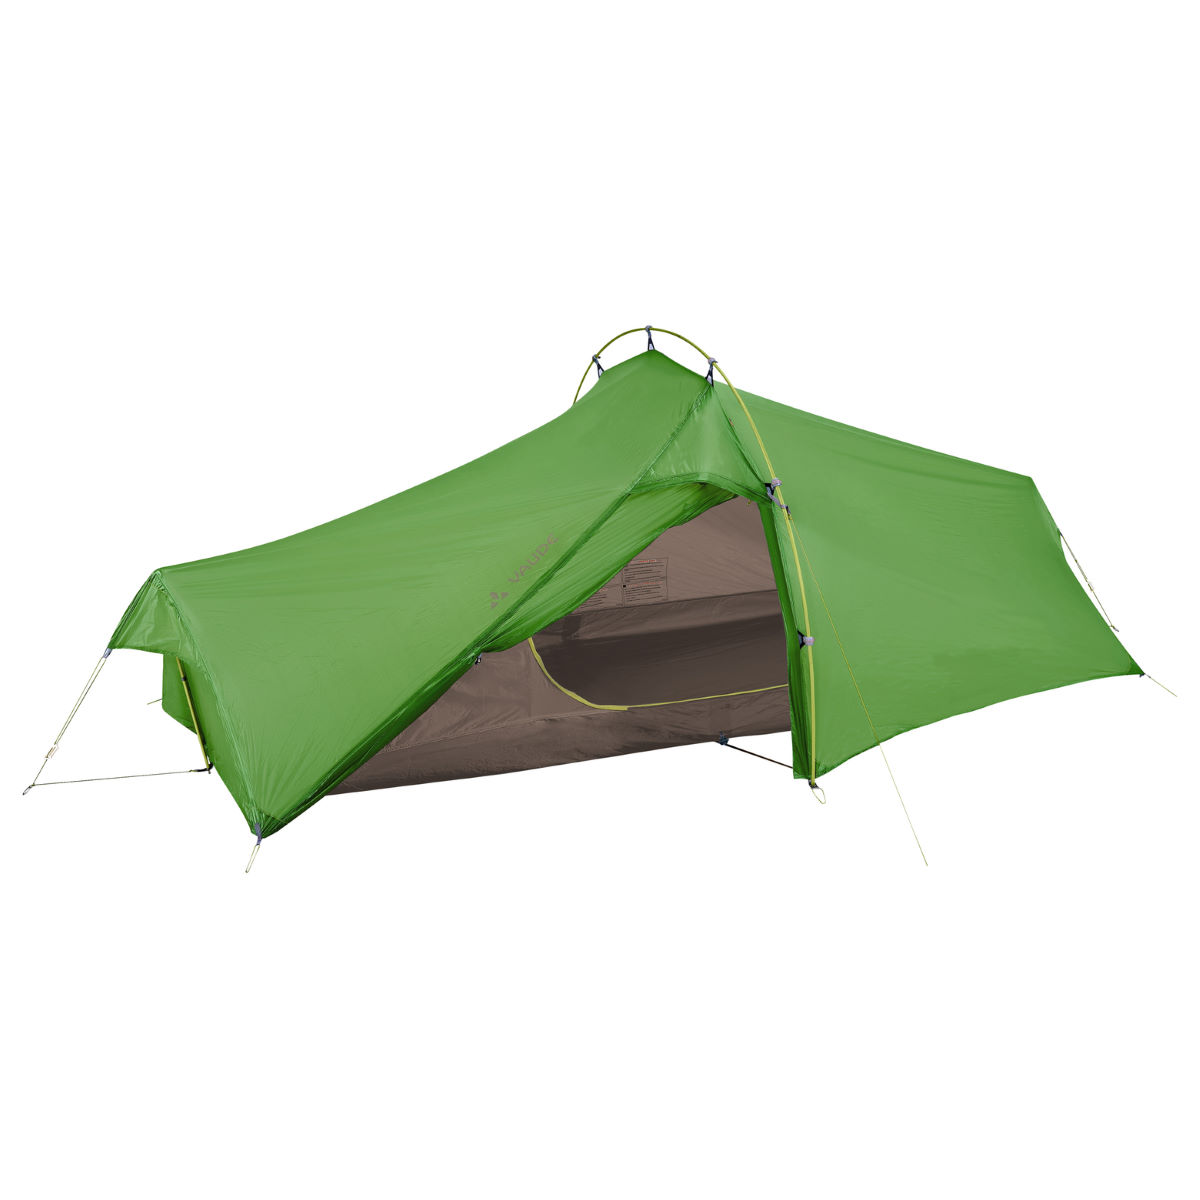 Vaude Vaude Power Lizard SUL 1-2P Tent   Tents